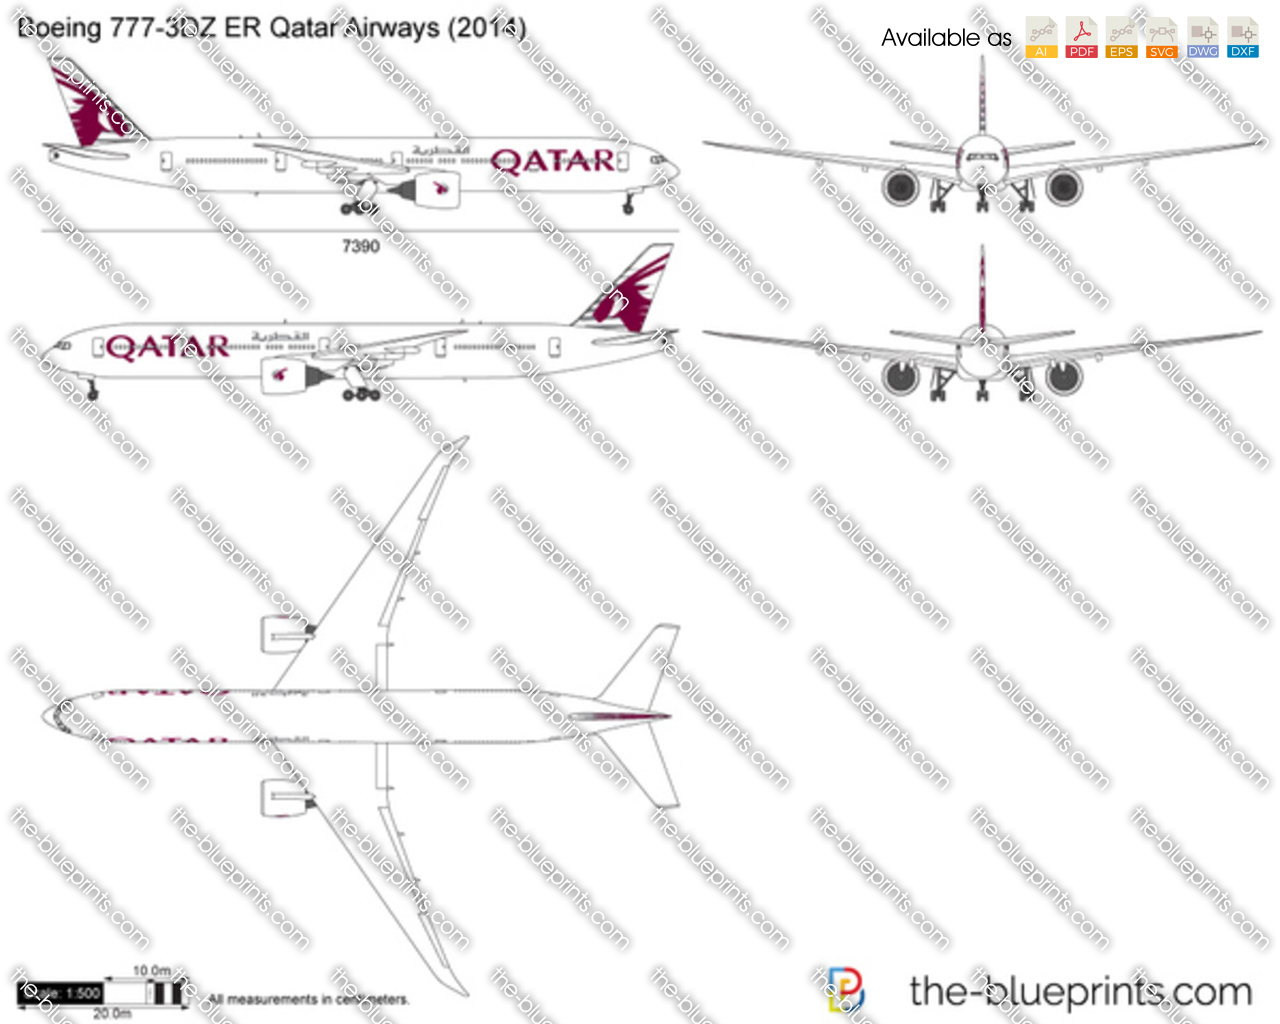 2017 Boeing 777-3DZ ER Qatar Airways